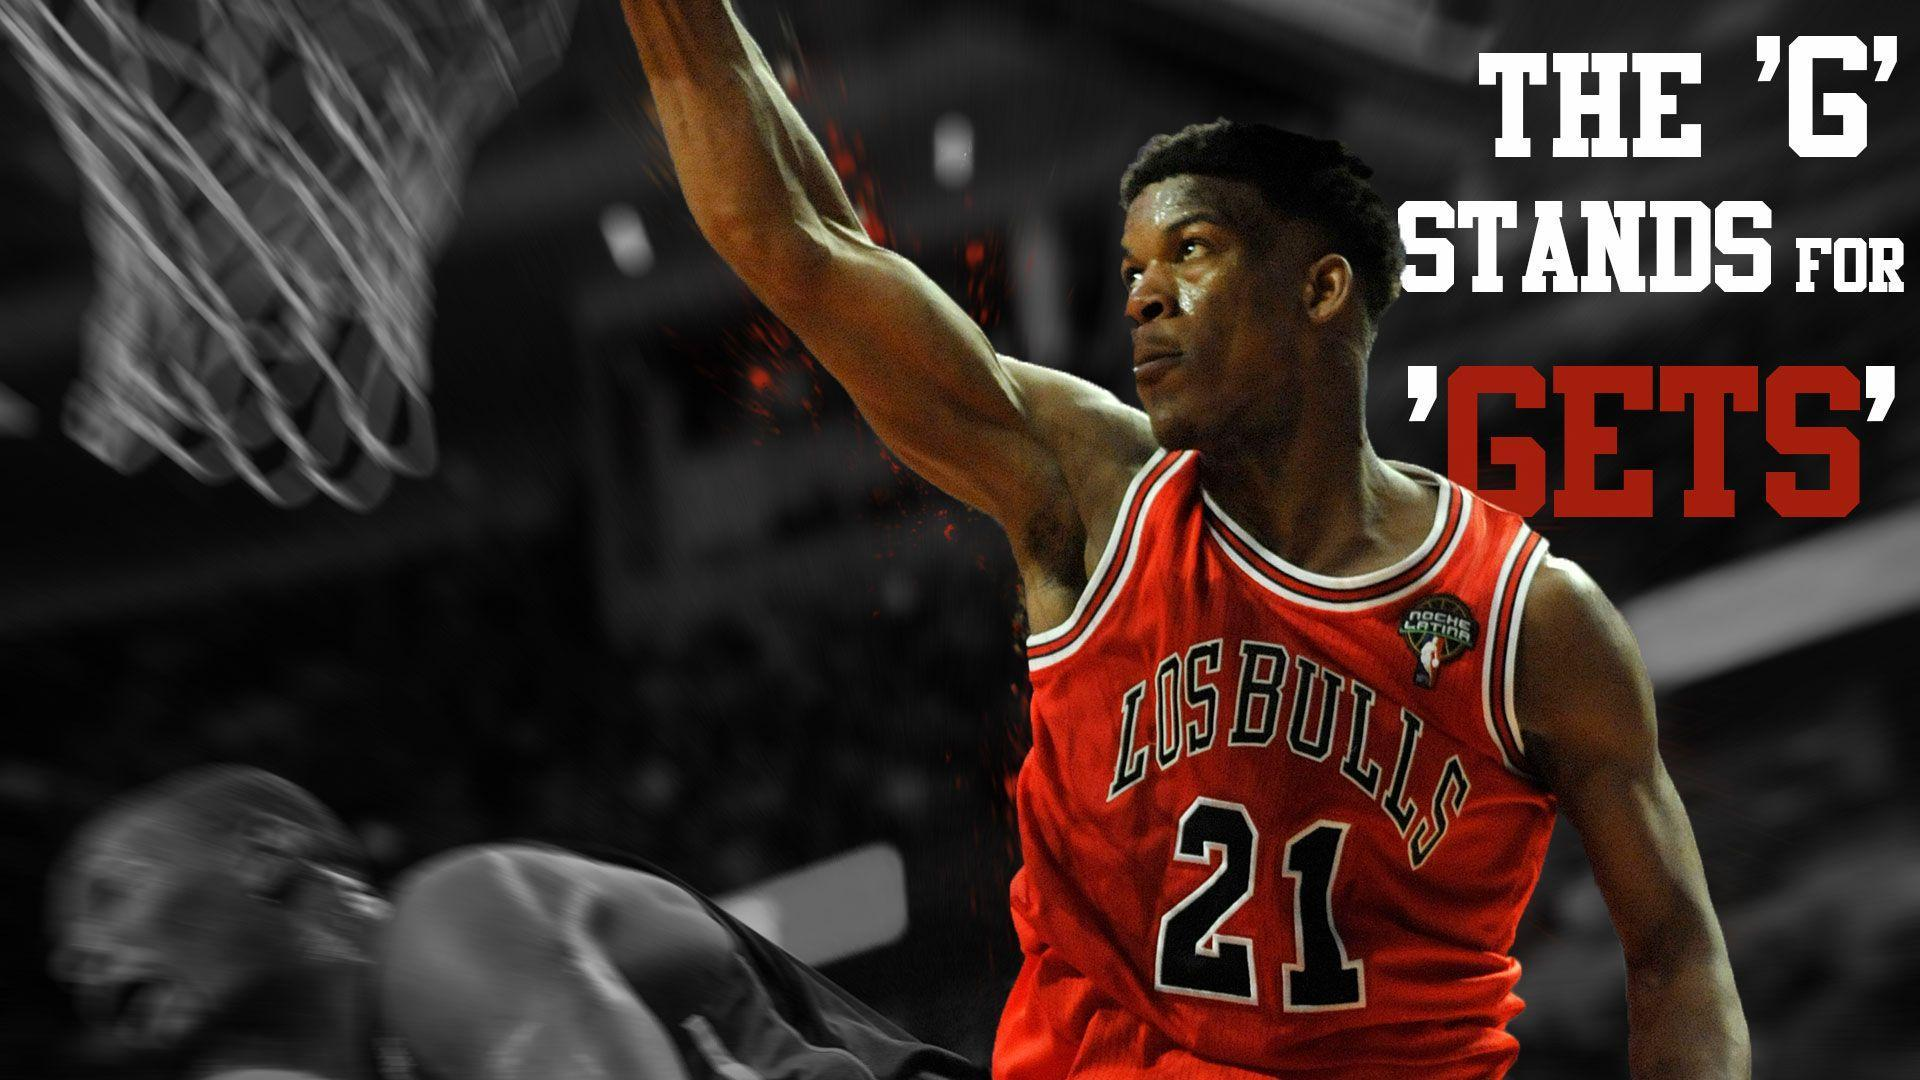 Jimmy Butler Wallpapers - Wallpaper Cave |Jimmy Butler Dunk Wallpaper